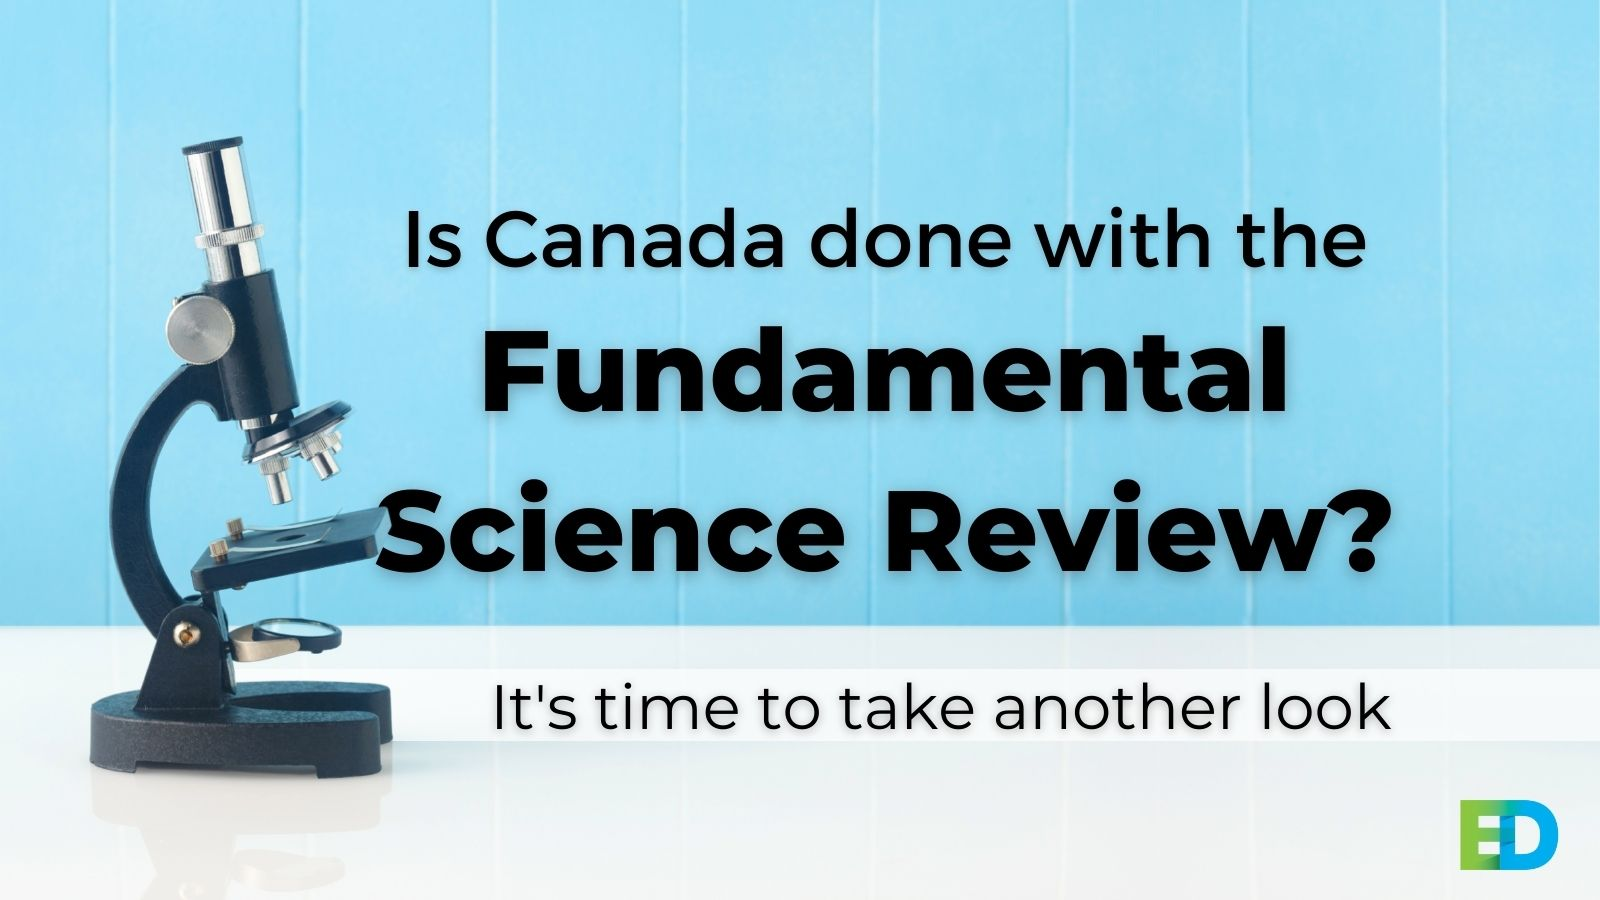 Is Canada done with the Fundamental Science Review?